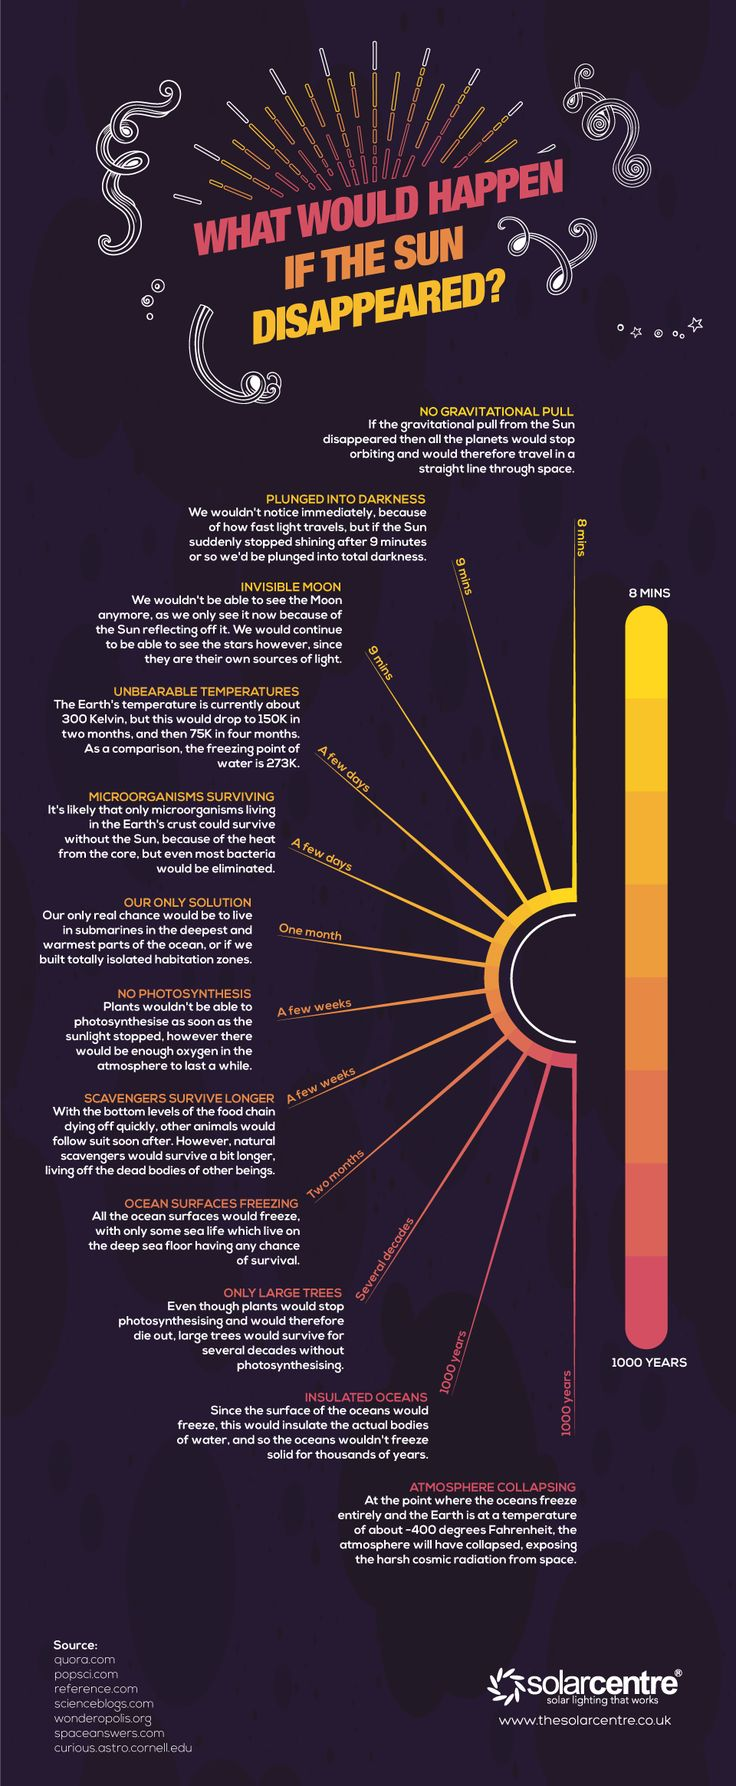 What Would Happen if the Sun Disappeared? #Infographic #Science #Space